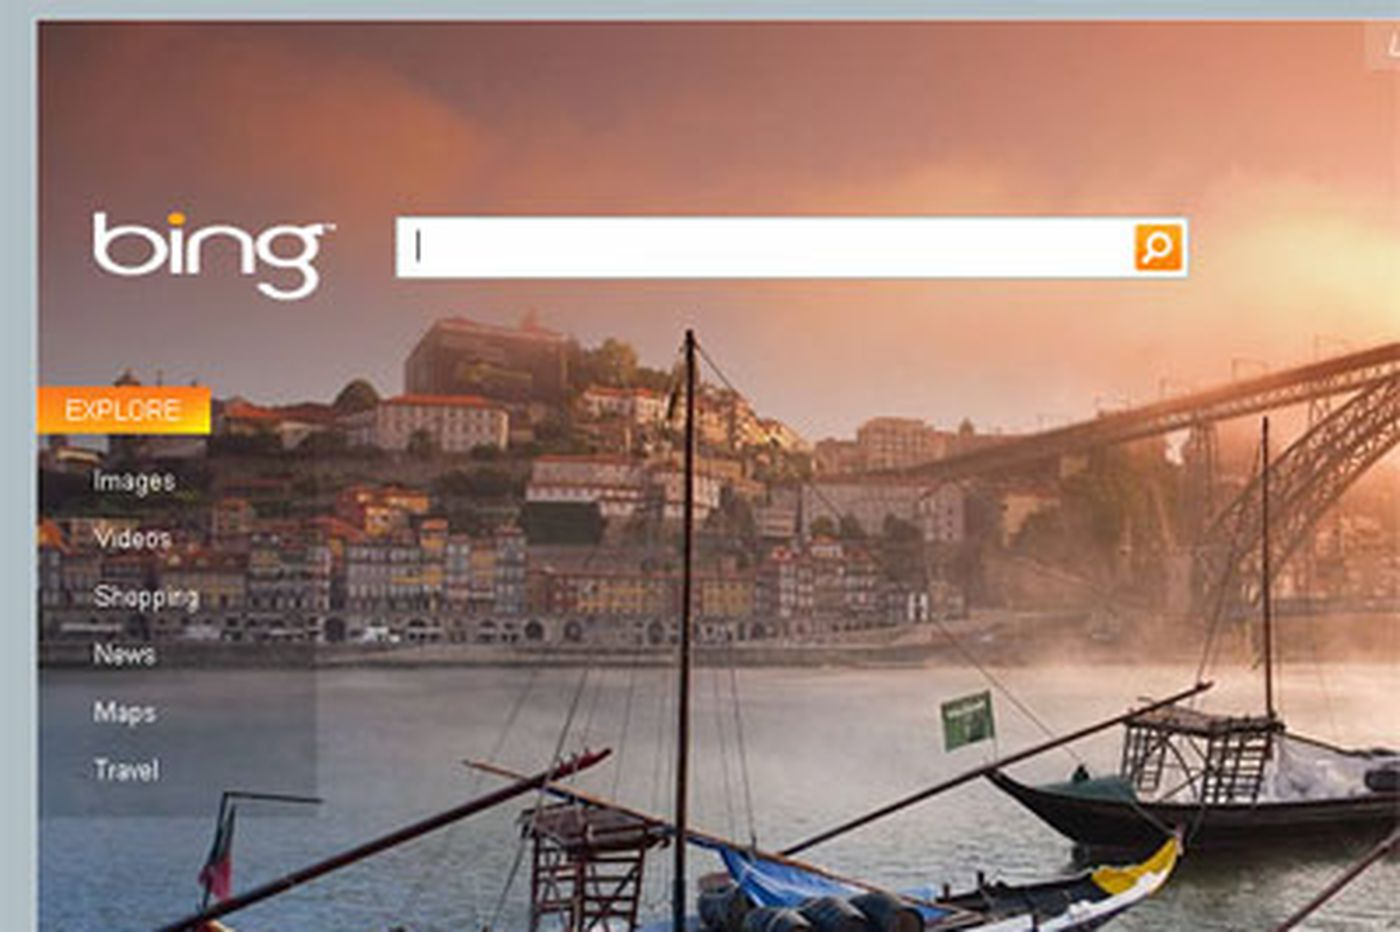 How to use Microsoft's new Bing search engine